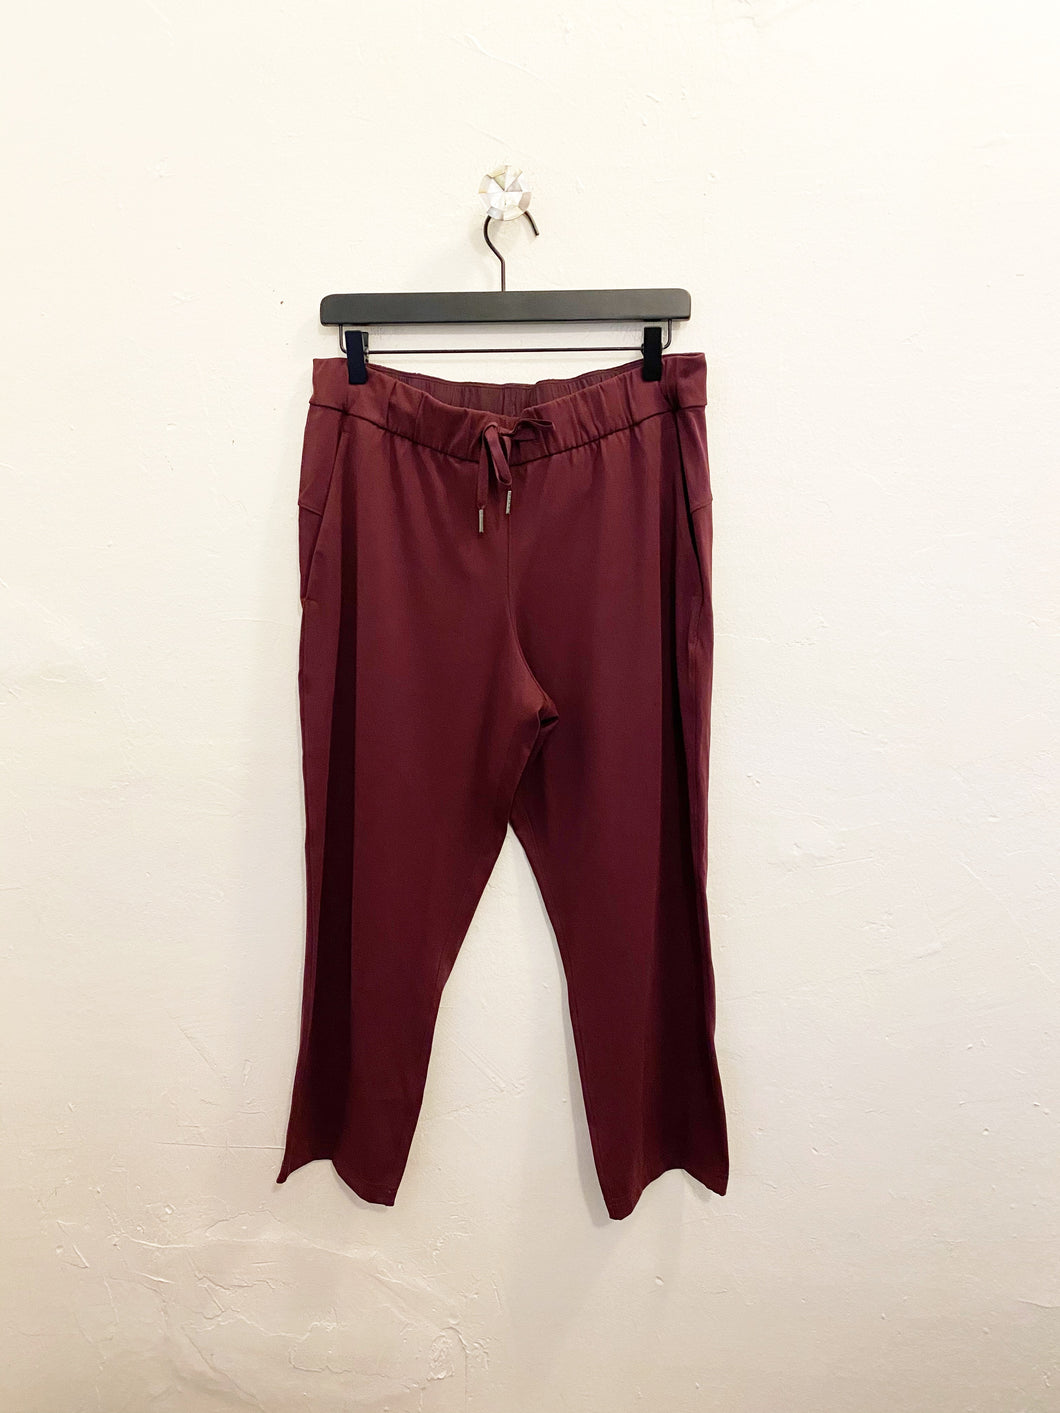 Lululemon Pants Sz 10